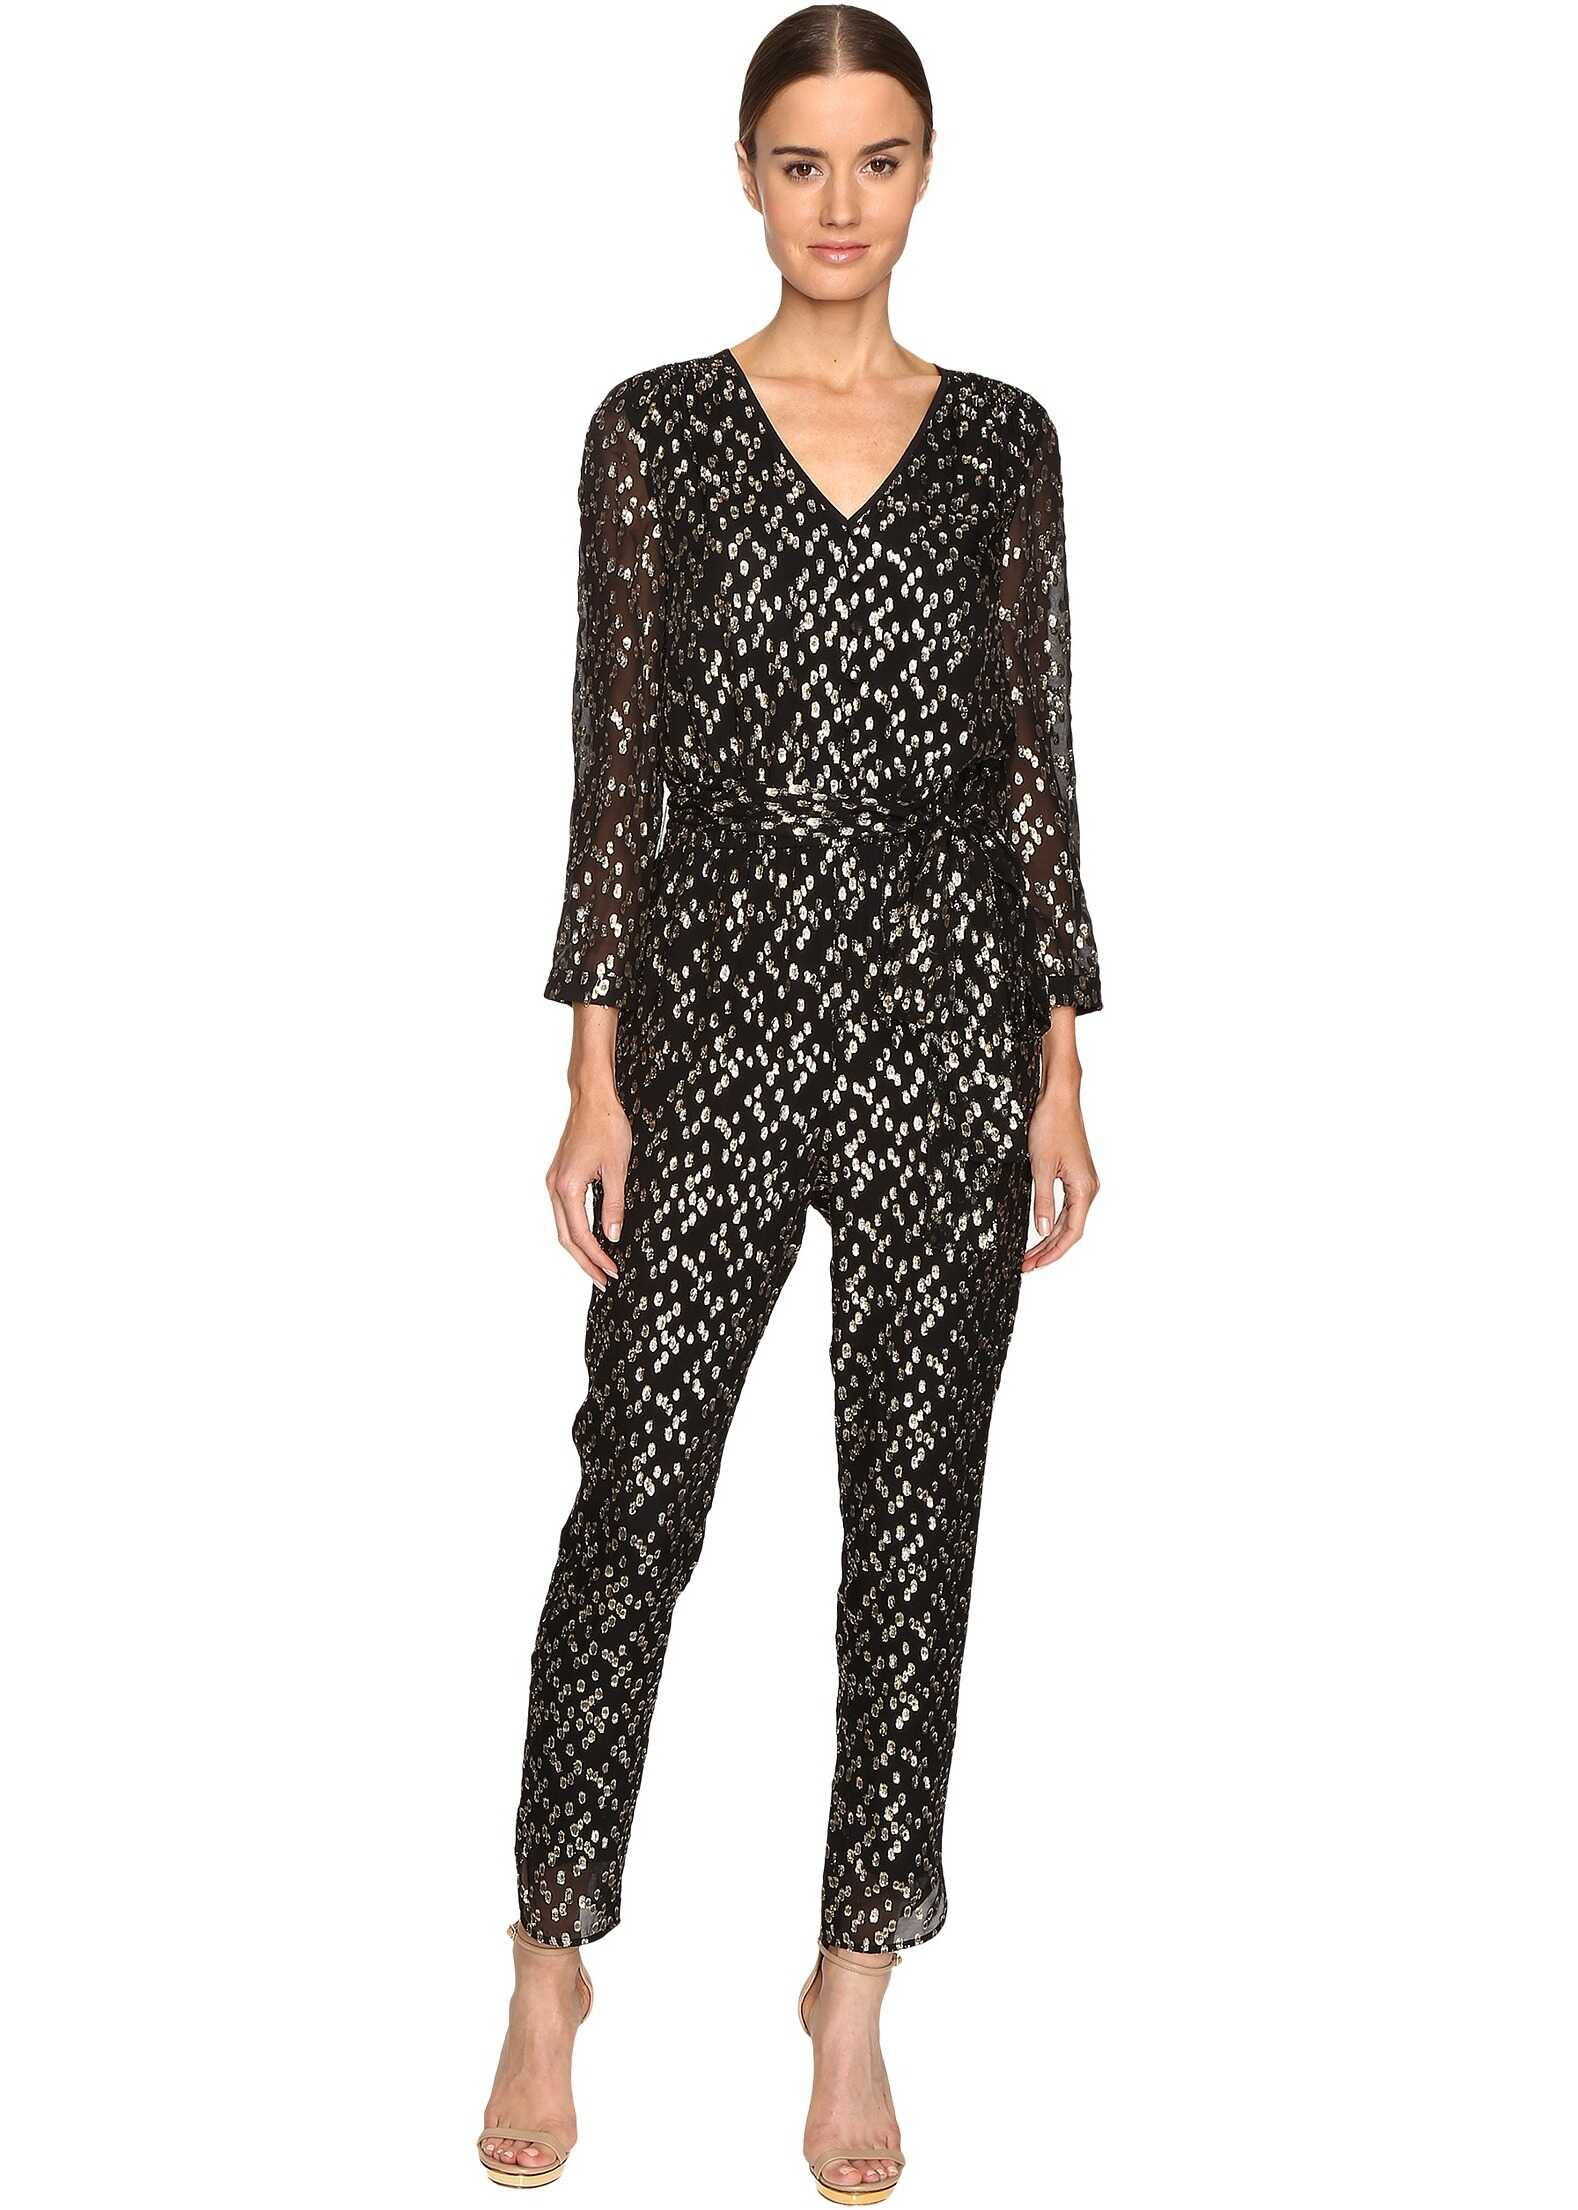 Kate Spade New York Metallic Clipped Dot Jumpsuit* Black/Gold